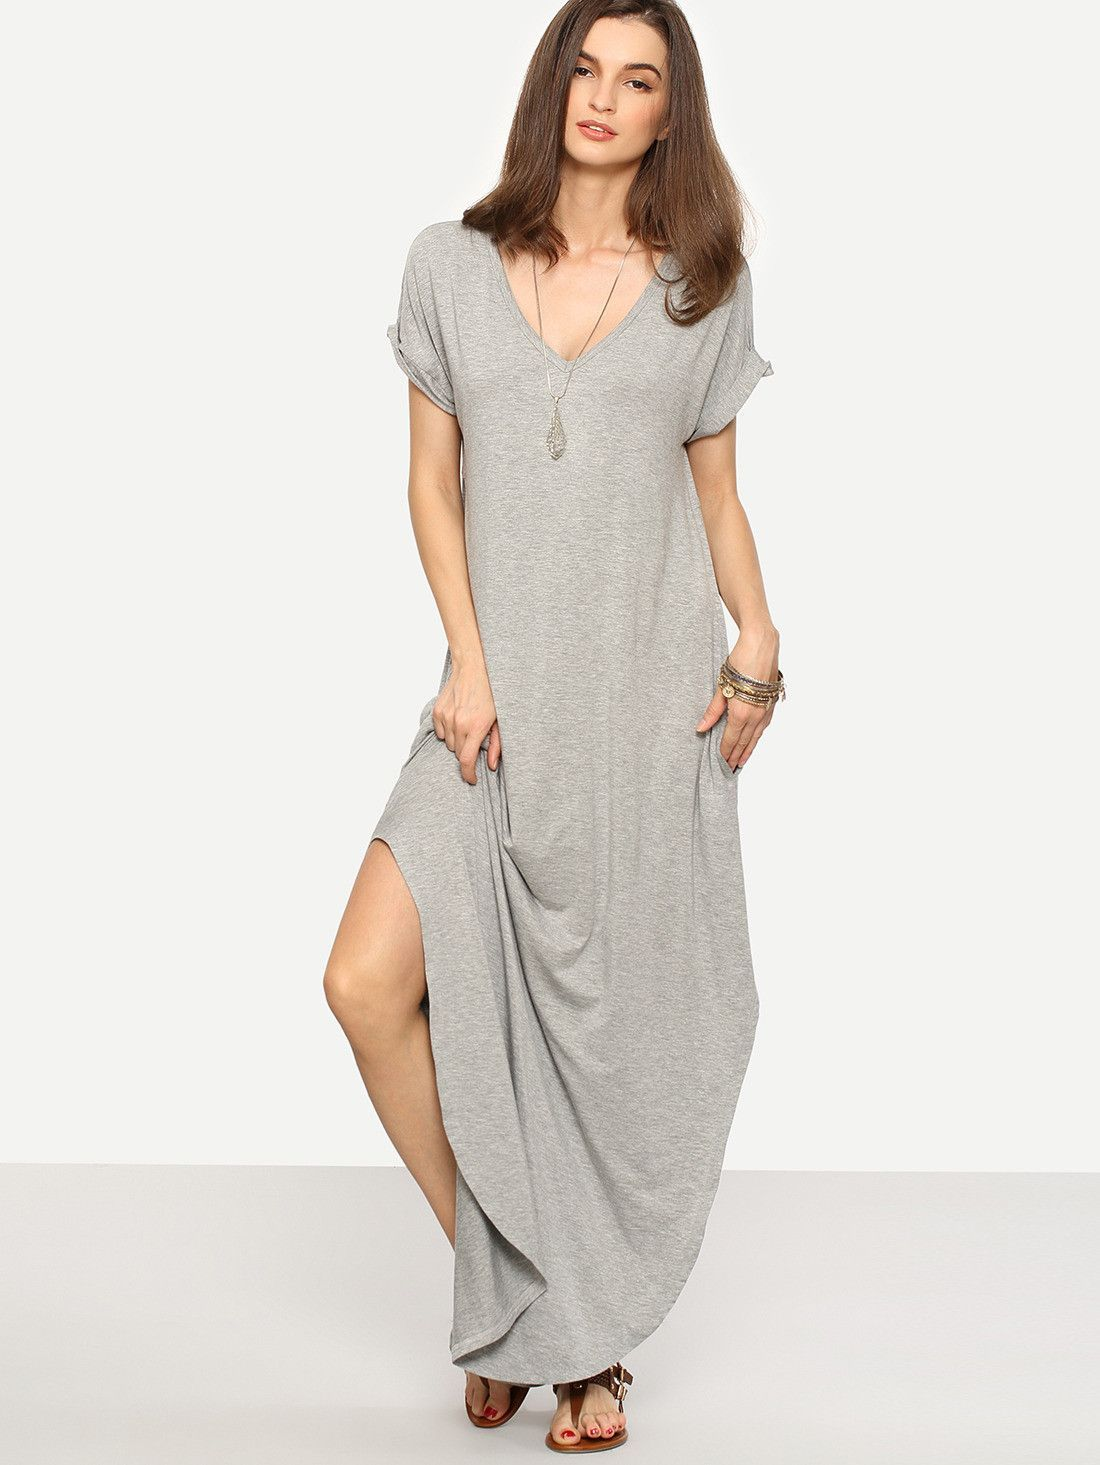 8012489dde Fabric: Fabric is very stretchy Season: Summer Type: Tshirt Pattern Type:  Plain Sleeve Length: Short Sleeve Color: Grey Dresses Length: Maxi Style:  Casual, ...